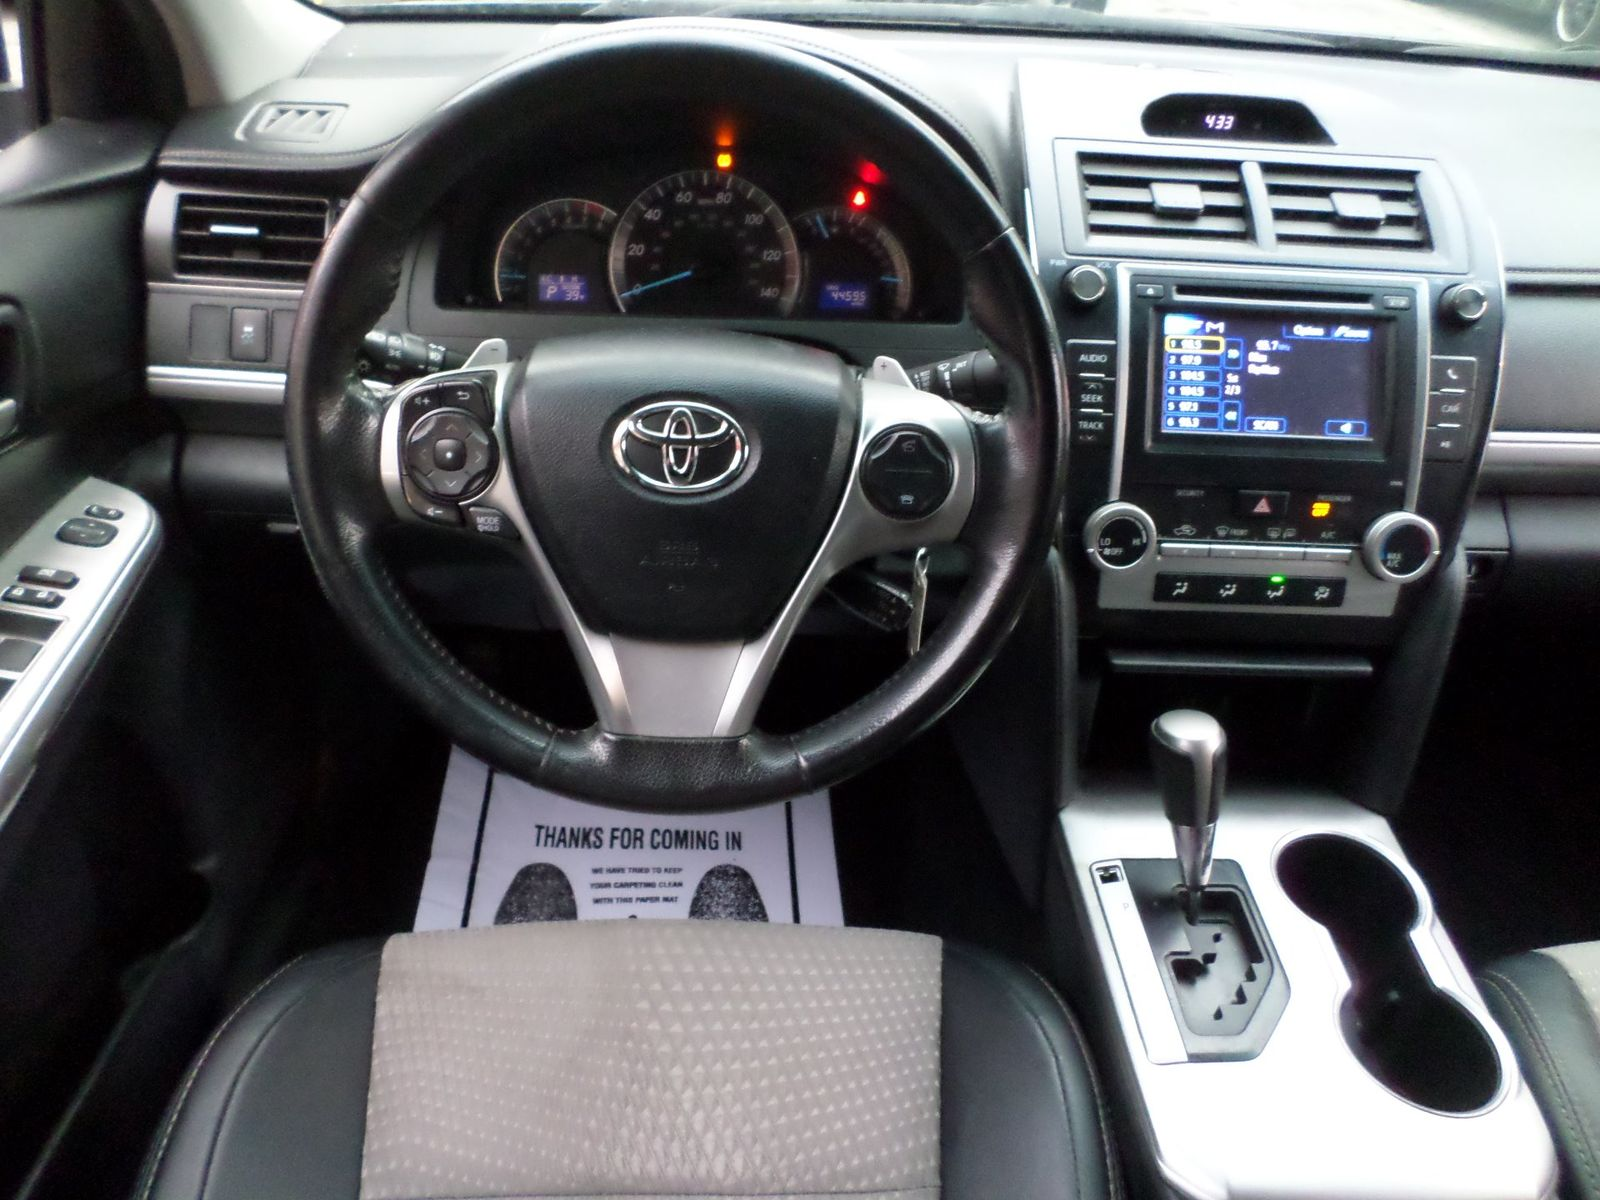 stock miami ldxpjaxkmenr se for sale used carsforsale in toyota camry fl fine sedan cars florida